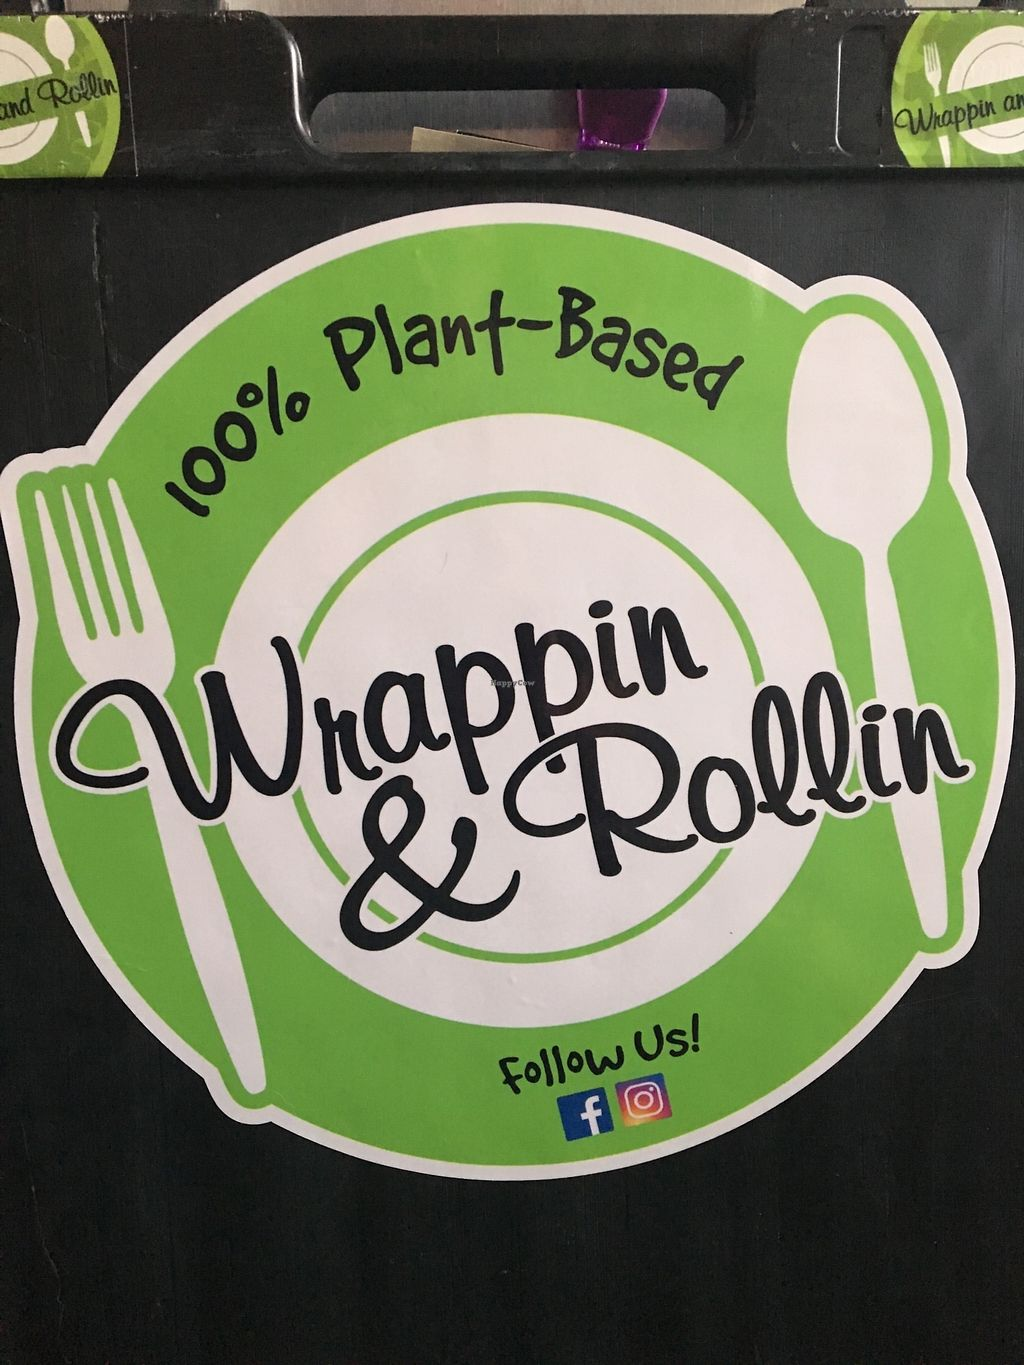 """Photo of Wrappin & Rollin - Food Truck  by <a href=""""/members/profile/DarylHawkins117"""">DarylHawkins117</a> <br/>Terrifically huge flavors from such a tiny little food truck!!! The owner knows what she's doing to have healthy, fresh organic food taste so delicious.  <br/> November 12, 2017  - <a href='/contact/abuse/image/103338/324773'>Report</a>"""